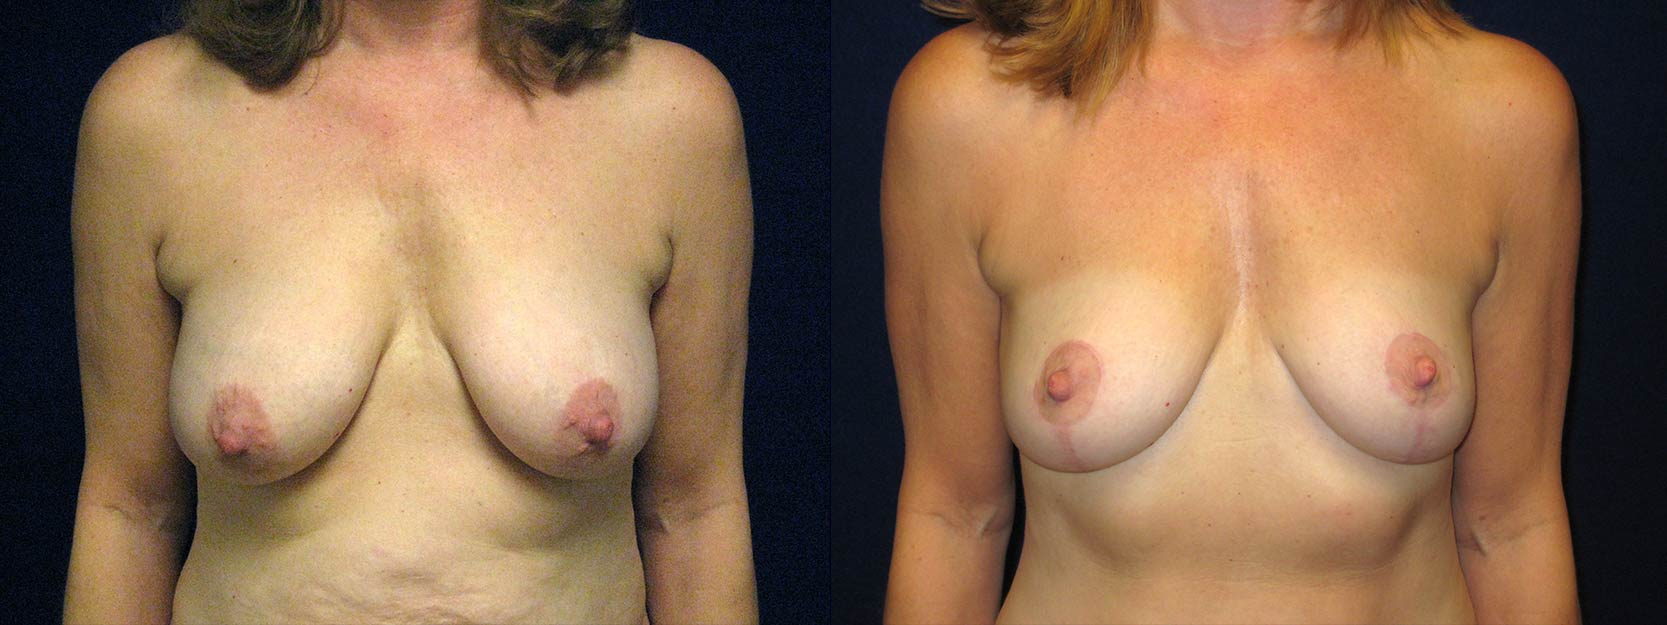 Frontal View - Breast Lift After Pregnancy